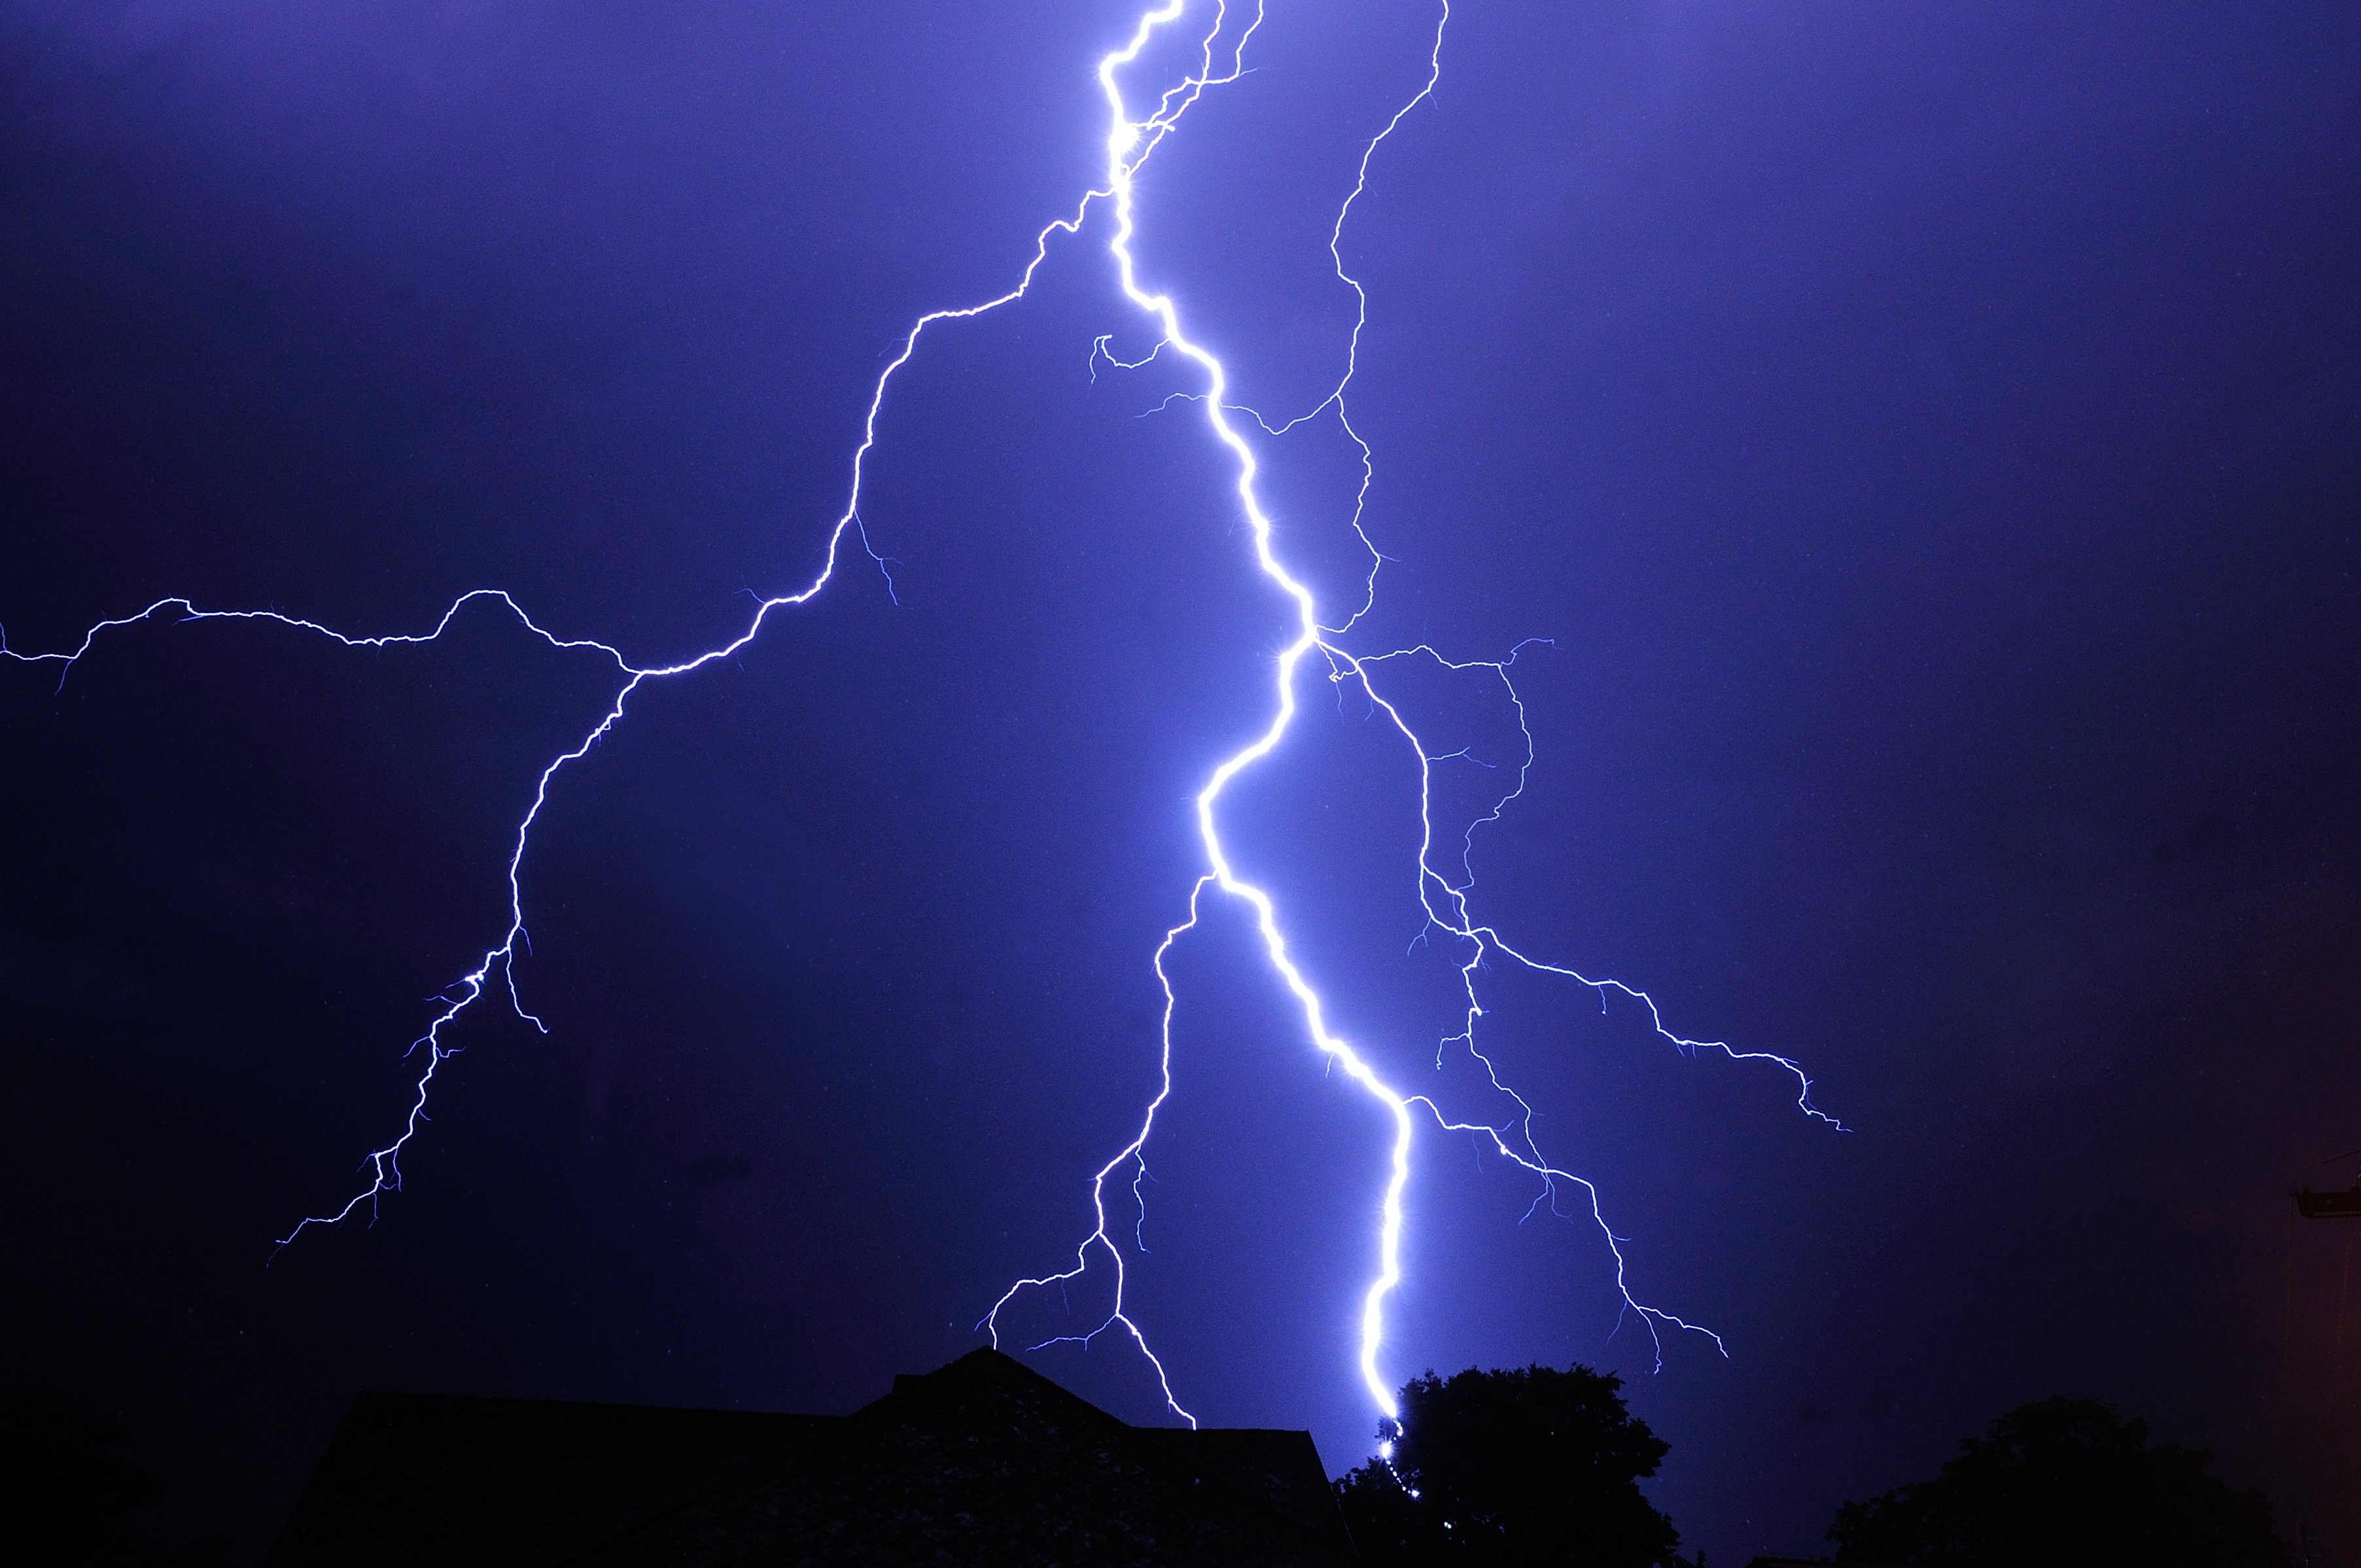 Severe Thunderstorms Facts Safety Tips Amp Recovery Steps